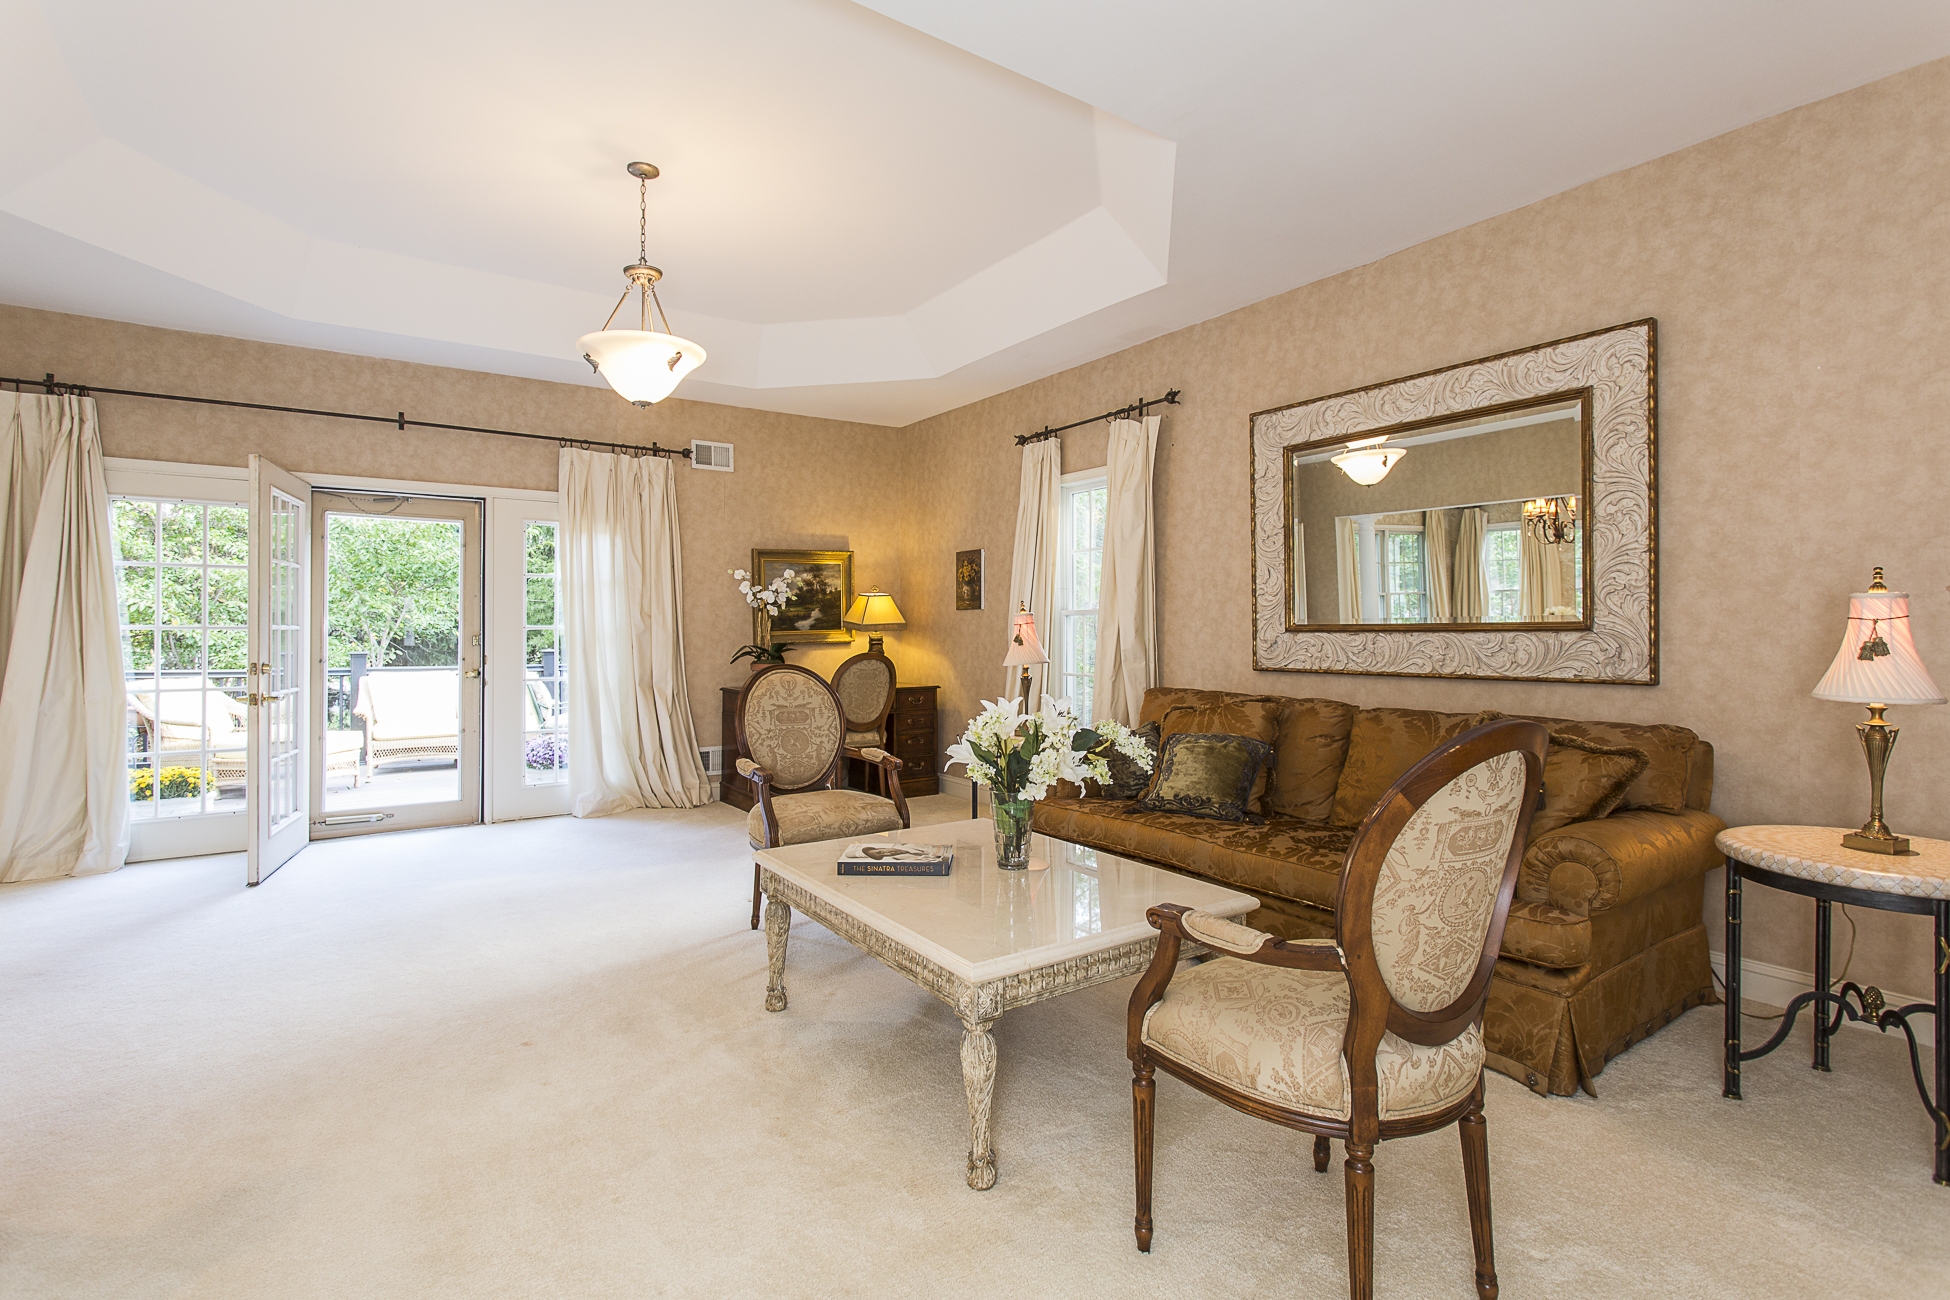 Additional photo for property listing at Easy, Luxurious Living in Princeton Windrows - Plainsboro Township 8 Azalea Court Princeton, New Jersey 08540 United States